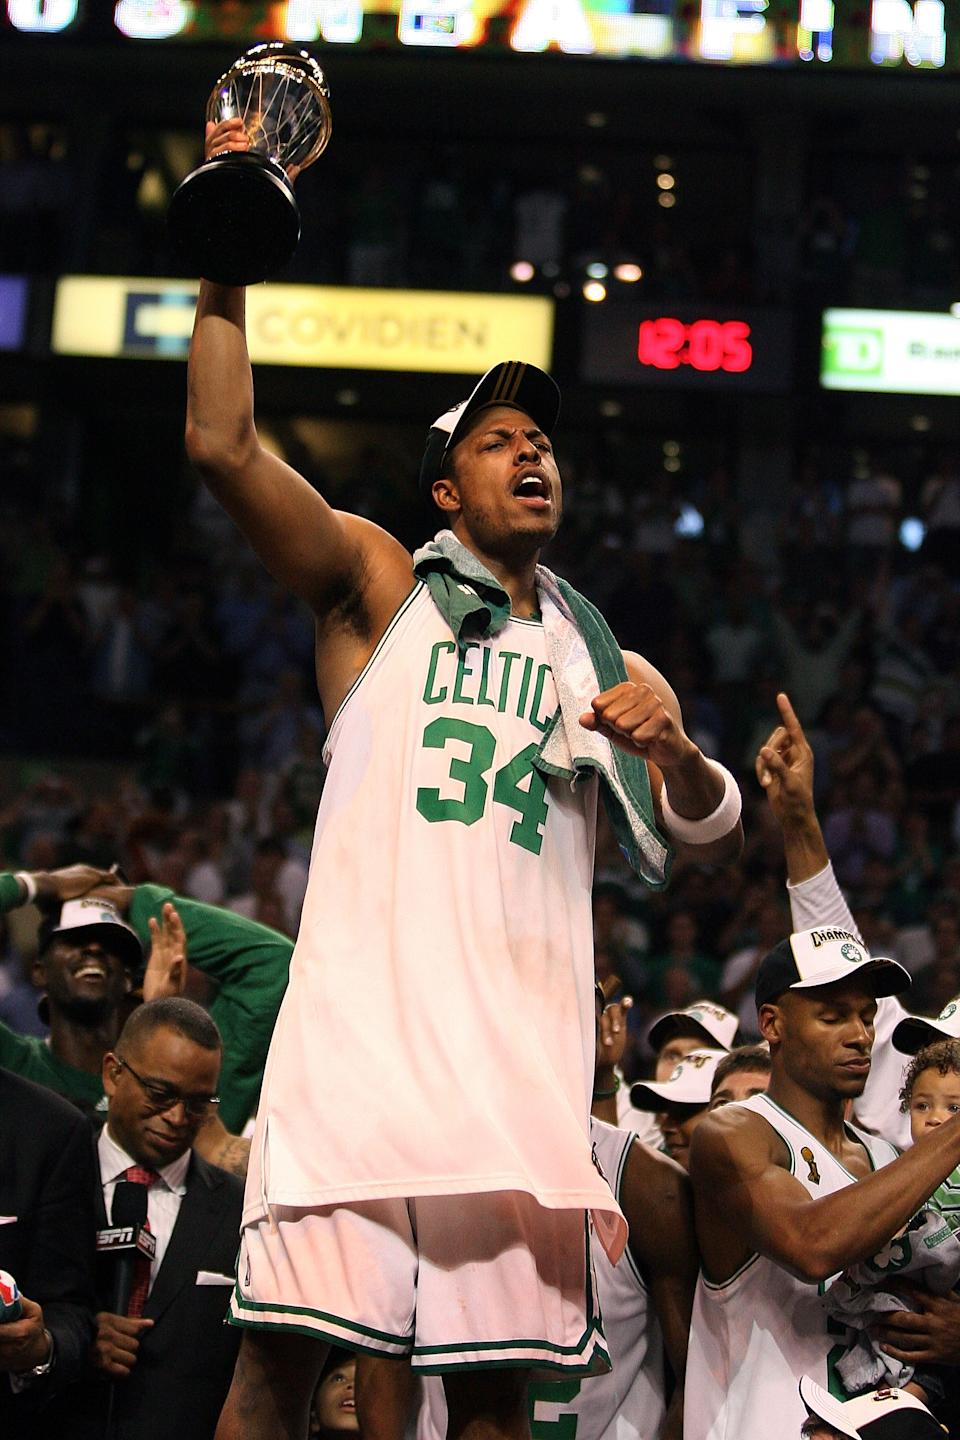 BOSTON - JUNE 17:  Paul Pierce #34 of the Boston Celtics celebrates with the NBA Finals MVP trophy after defeating the Los Angeles Lakers in Game Six of the 2008 NBA Finals on June 17, 2008 at TD Banknorth Garden in Boston, Massachusetts. NOTE TO USER: User expressly acknowledges and agrees that, by downloading and/or using this Photograph, user is consenting to the terms and conditions of the Getty Images License Agreement.  (Photo by Elsa/Getty Images)